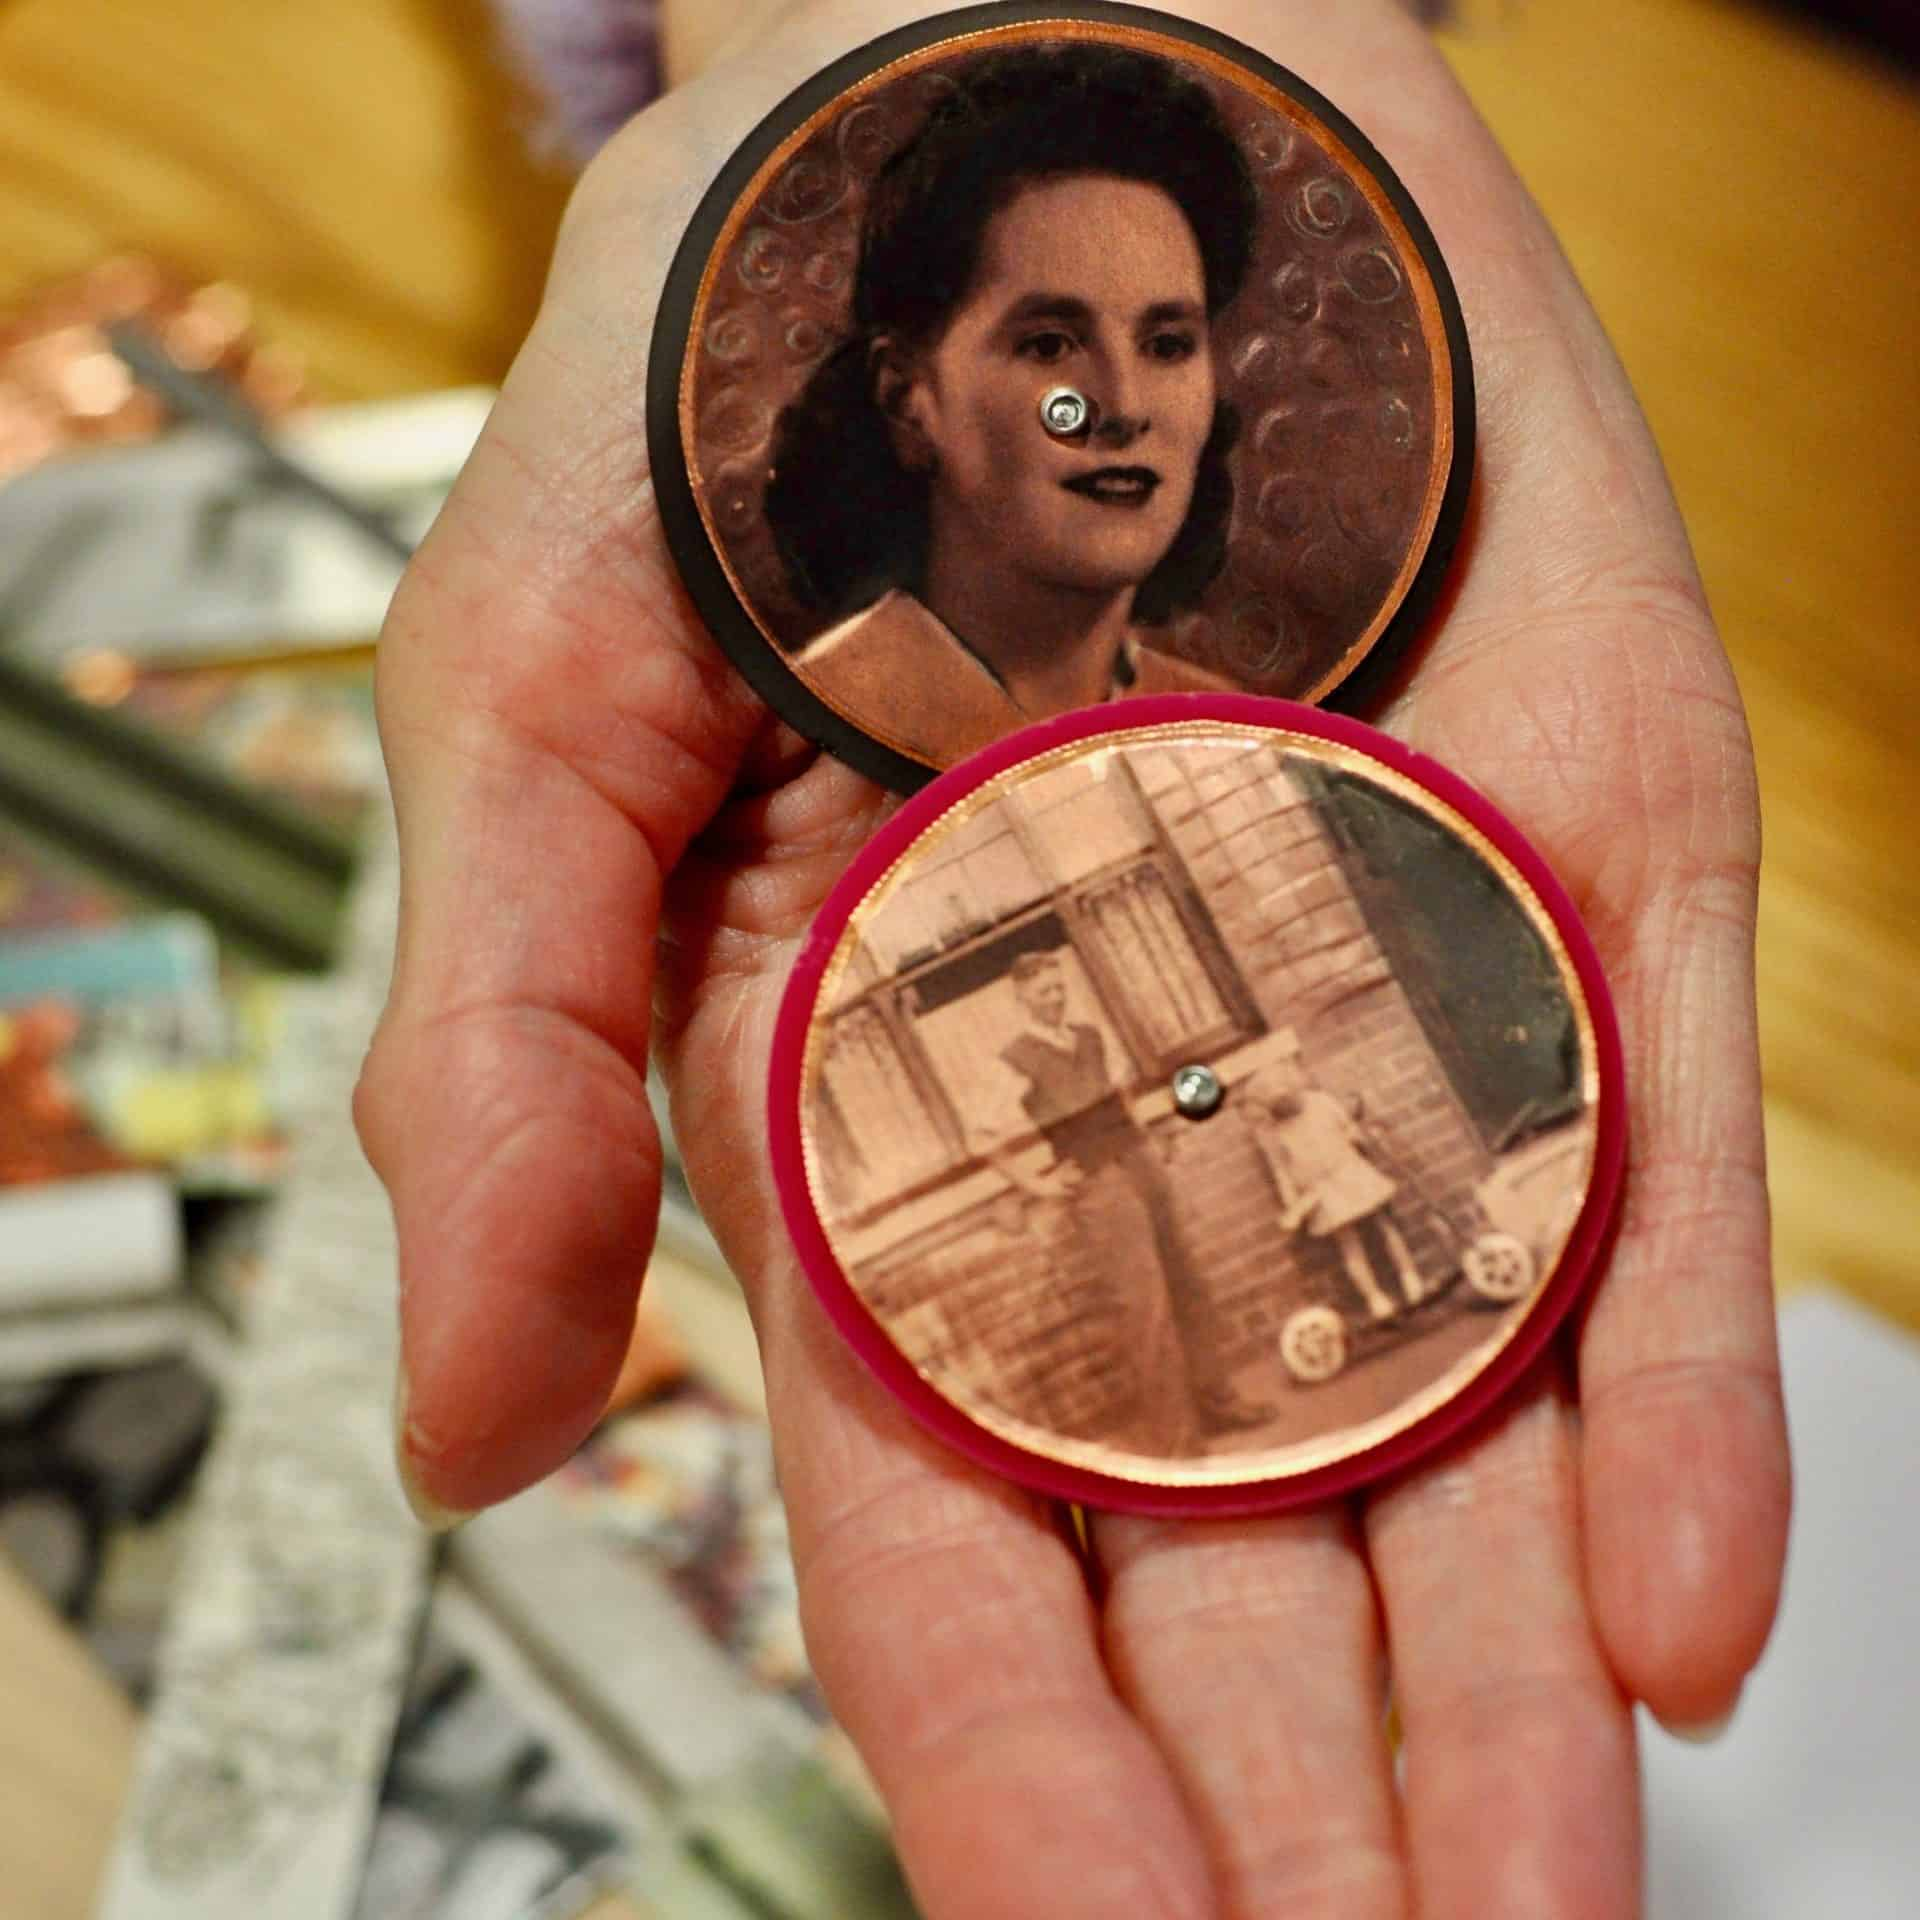 Wendy Viner, with a brooch made from a photo of her mother and herself outside her childhood home.